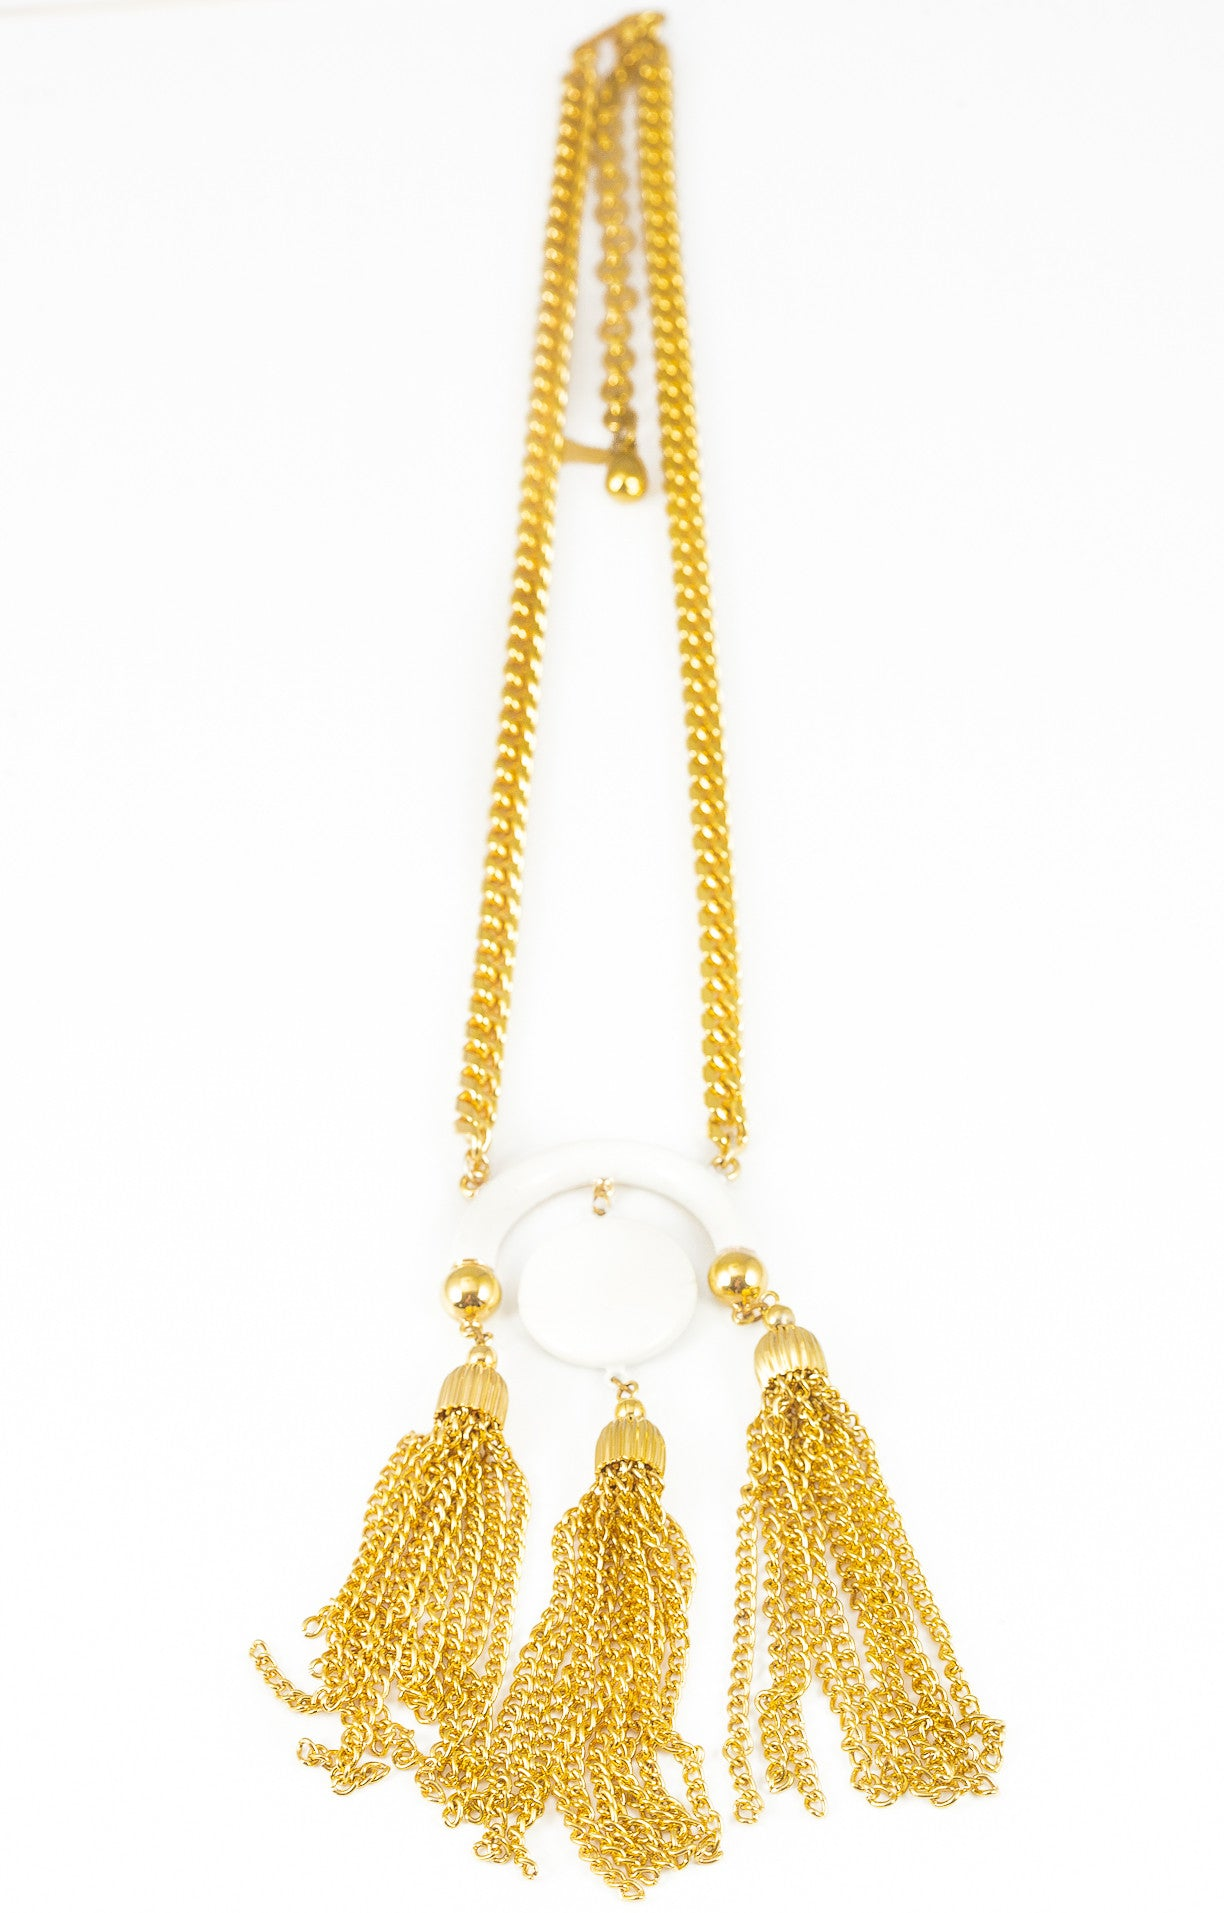 70's__Raquel__Triple Tassel Necklace